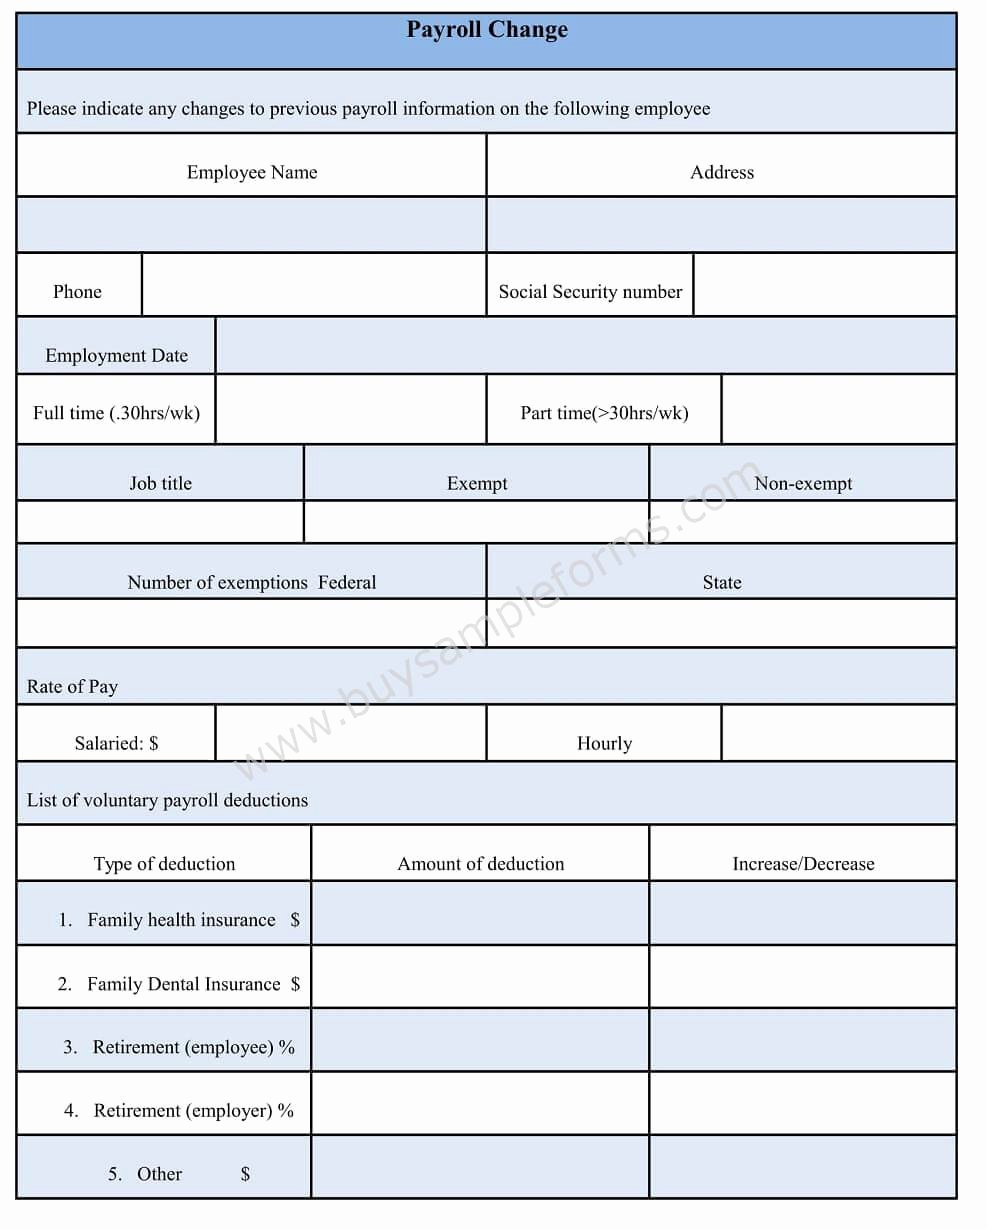 Payroll Change form Template Best Of Payroll Change form Word Document